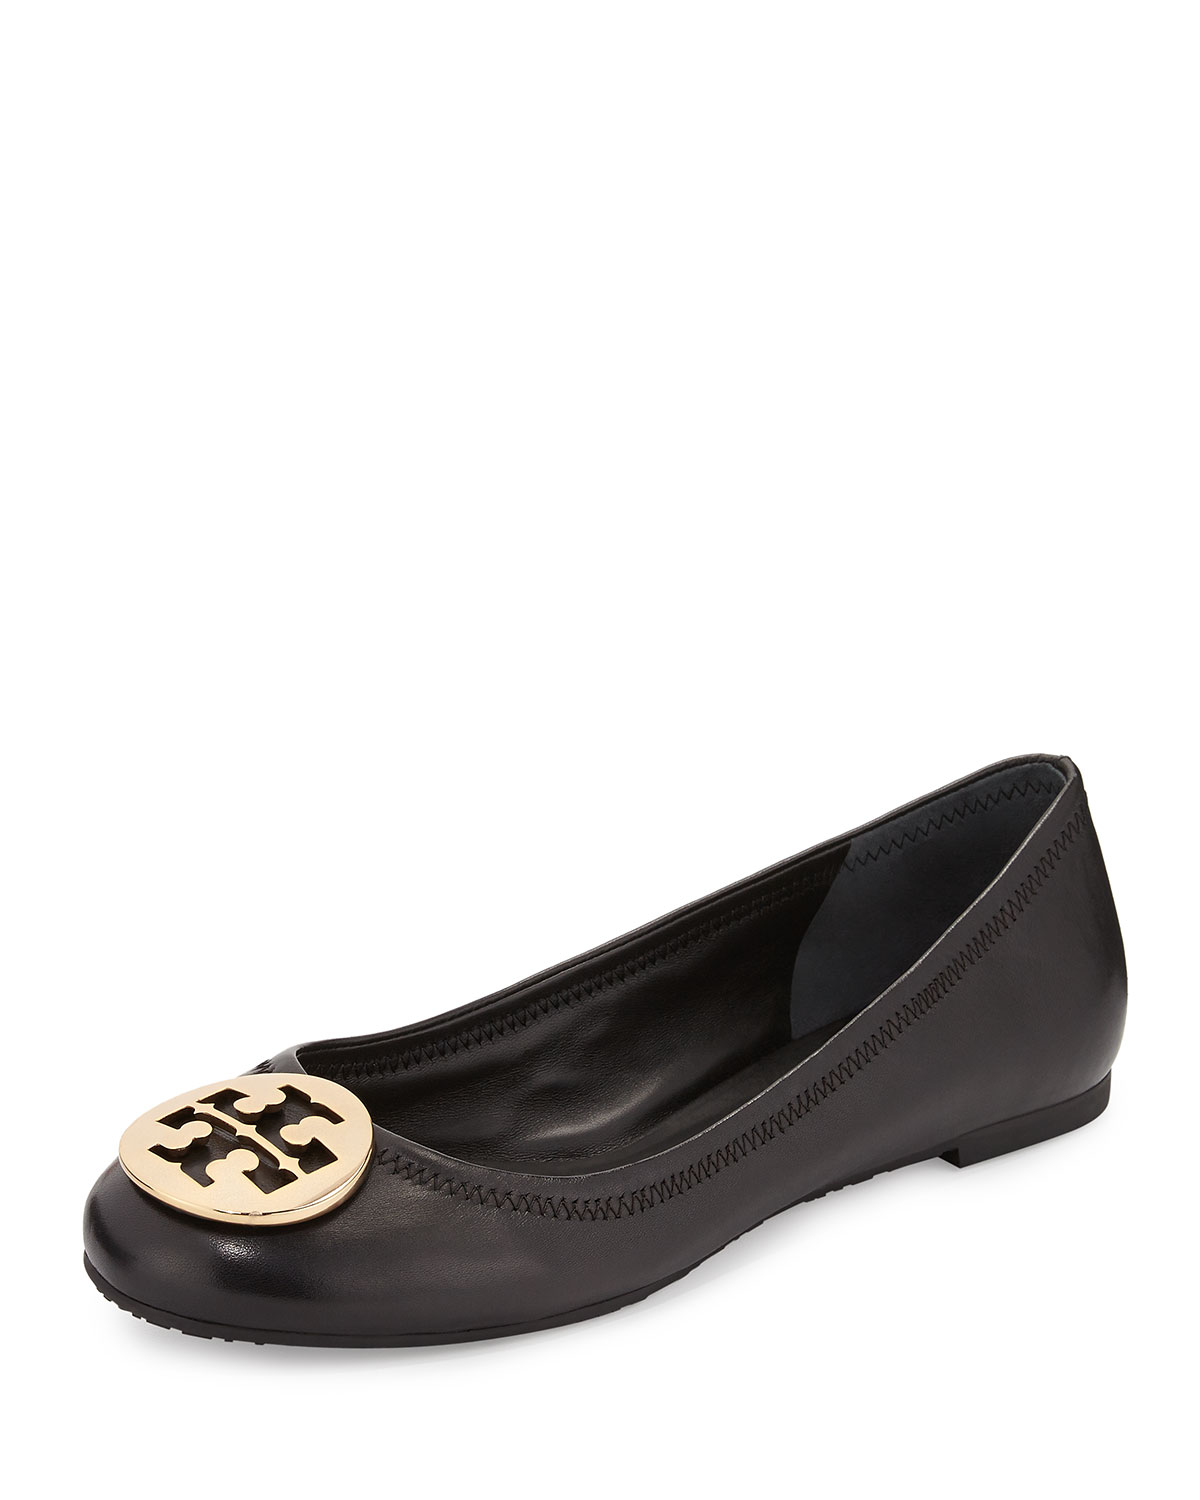 49ddefd19d6 Tory Burch Reva Leather Ballerina Flat